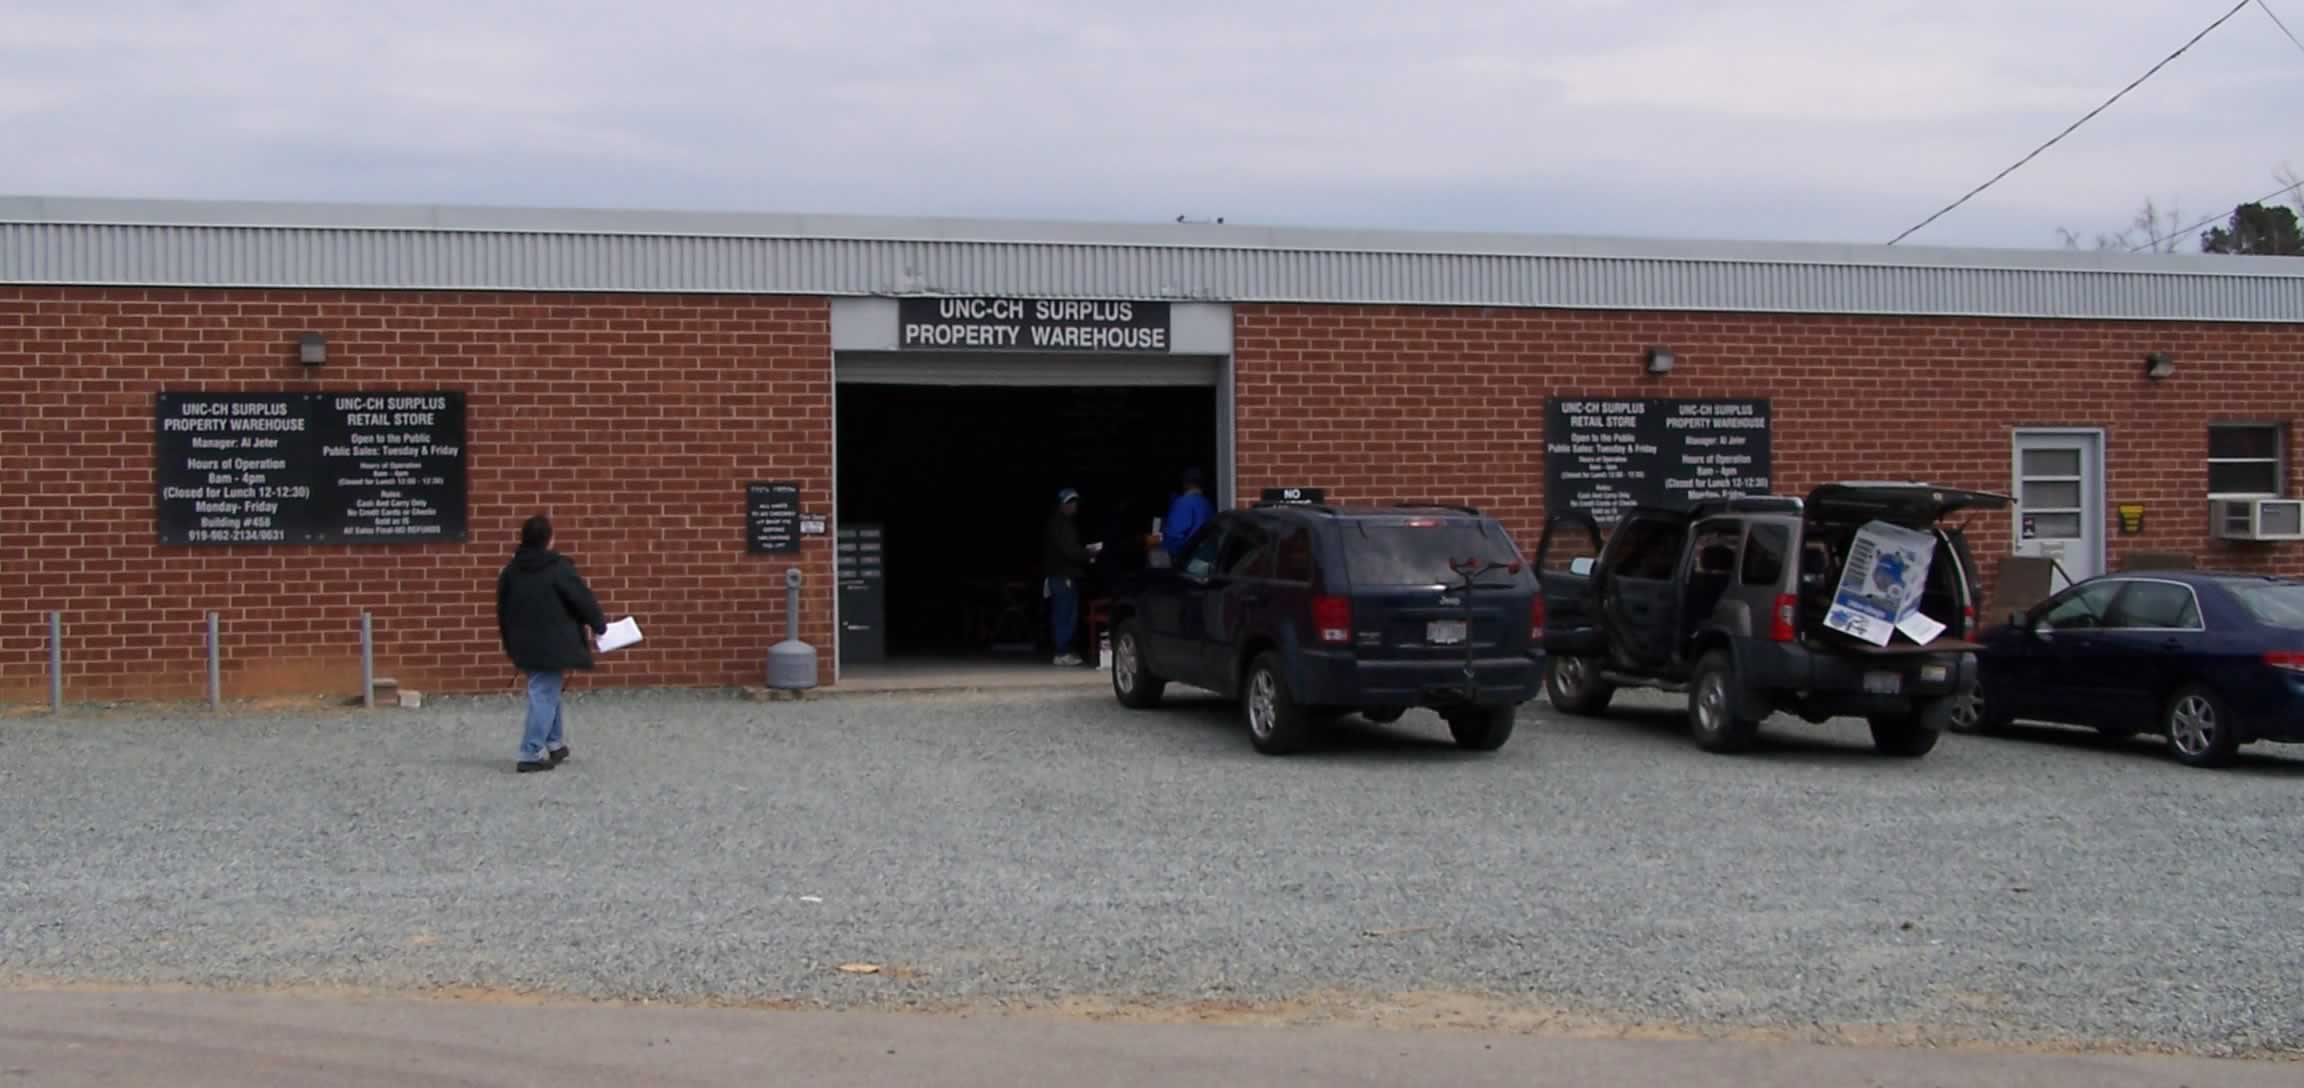 Contemporary Photo of Surplus Property Warehouse